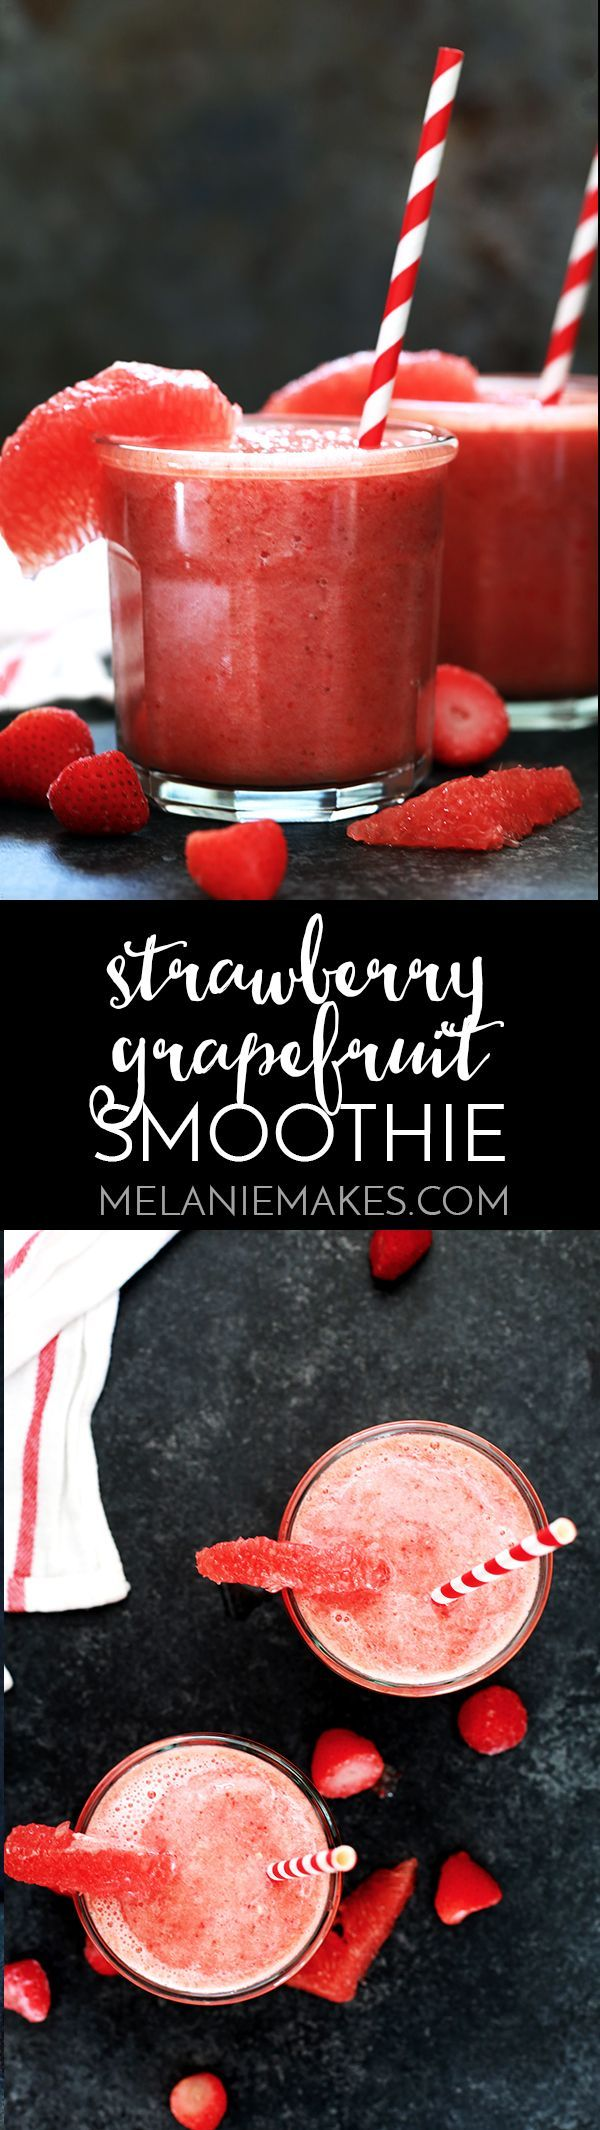 This four ingredient Strawberry Grapefruit Smoothie couldn't be easier! A ruby red grapefruit, strawberries, banana and orange juice are blended together in just seconds to create the perfect easy breakfast or snack. (refreshing drinks grapefruit)